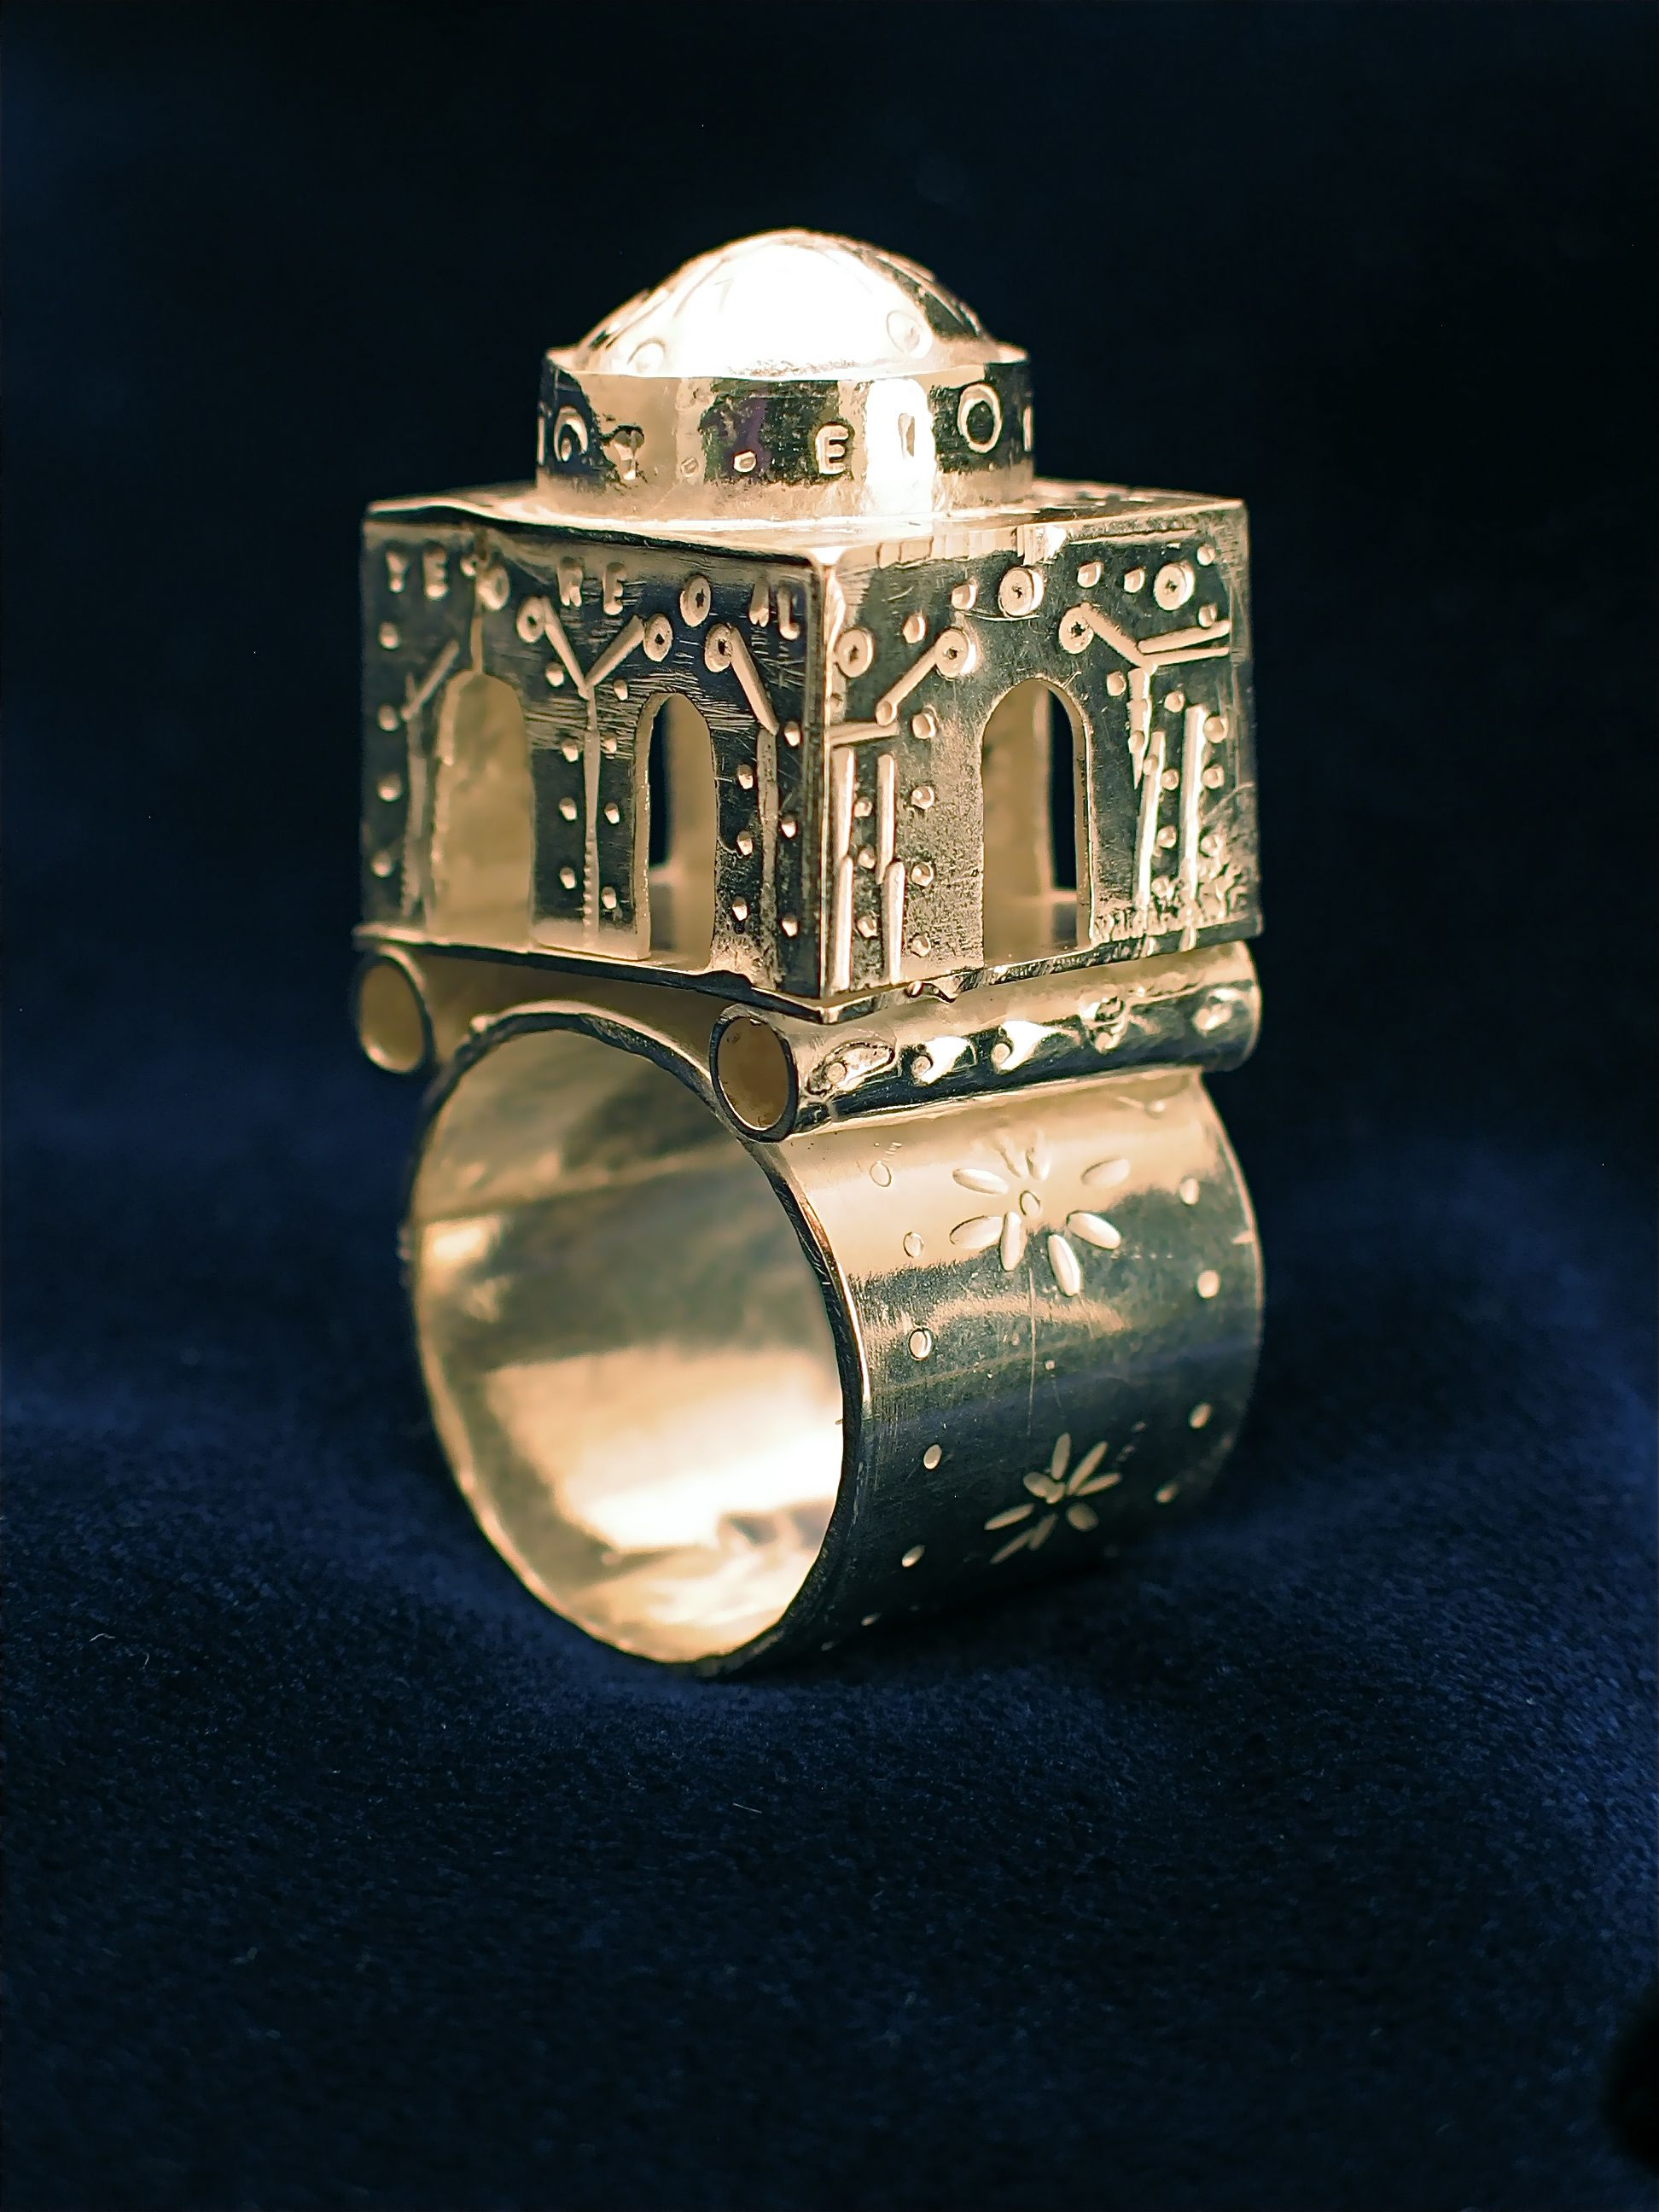 1000 Images About Judaica House Rings On Pinterest Jewish Museum Wedding  Ring And 14th Century